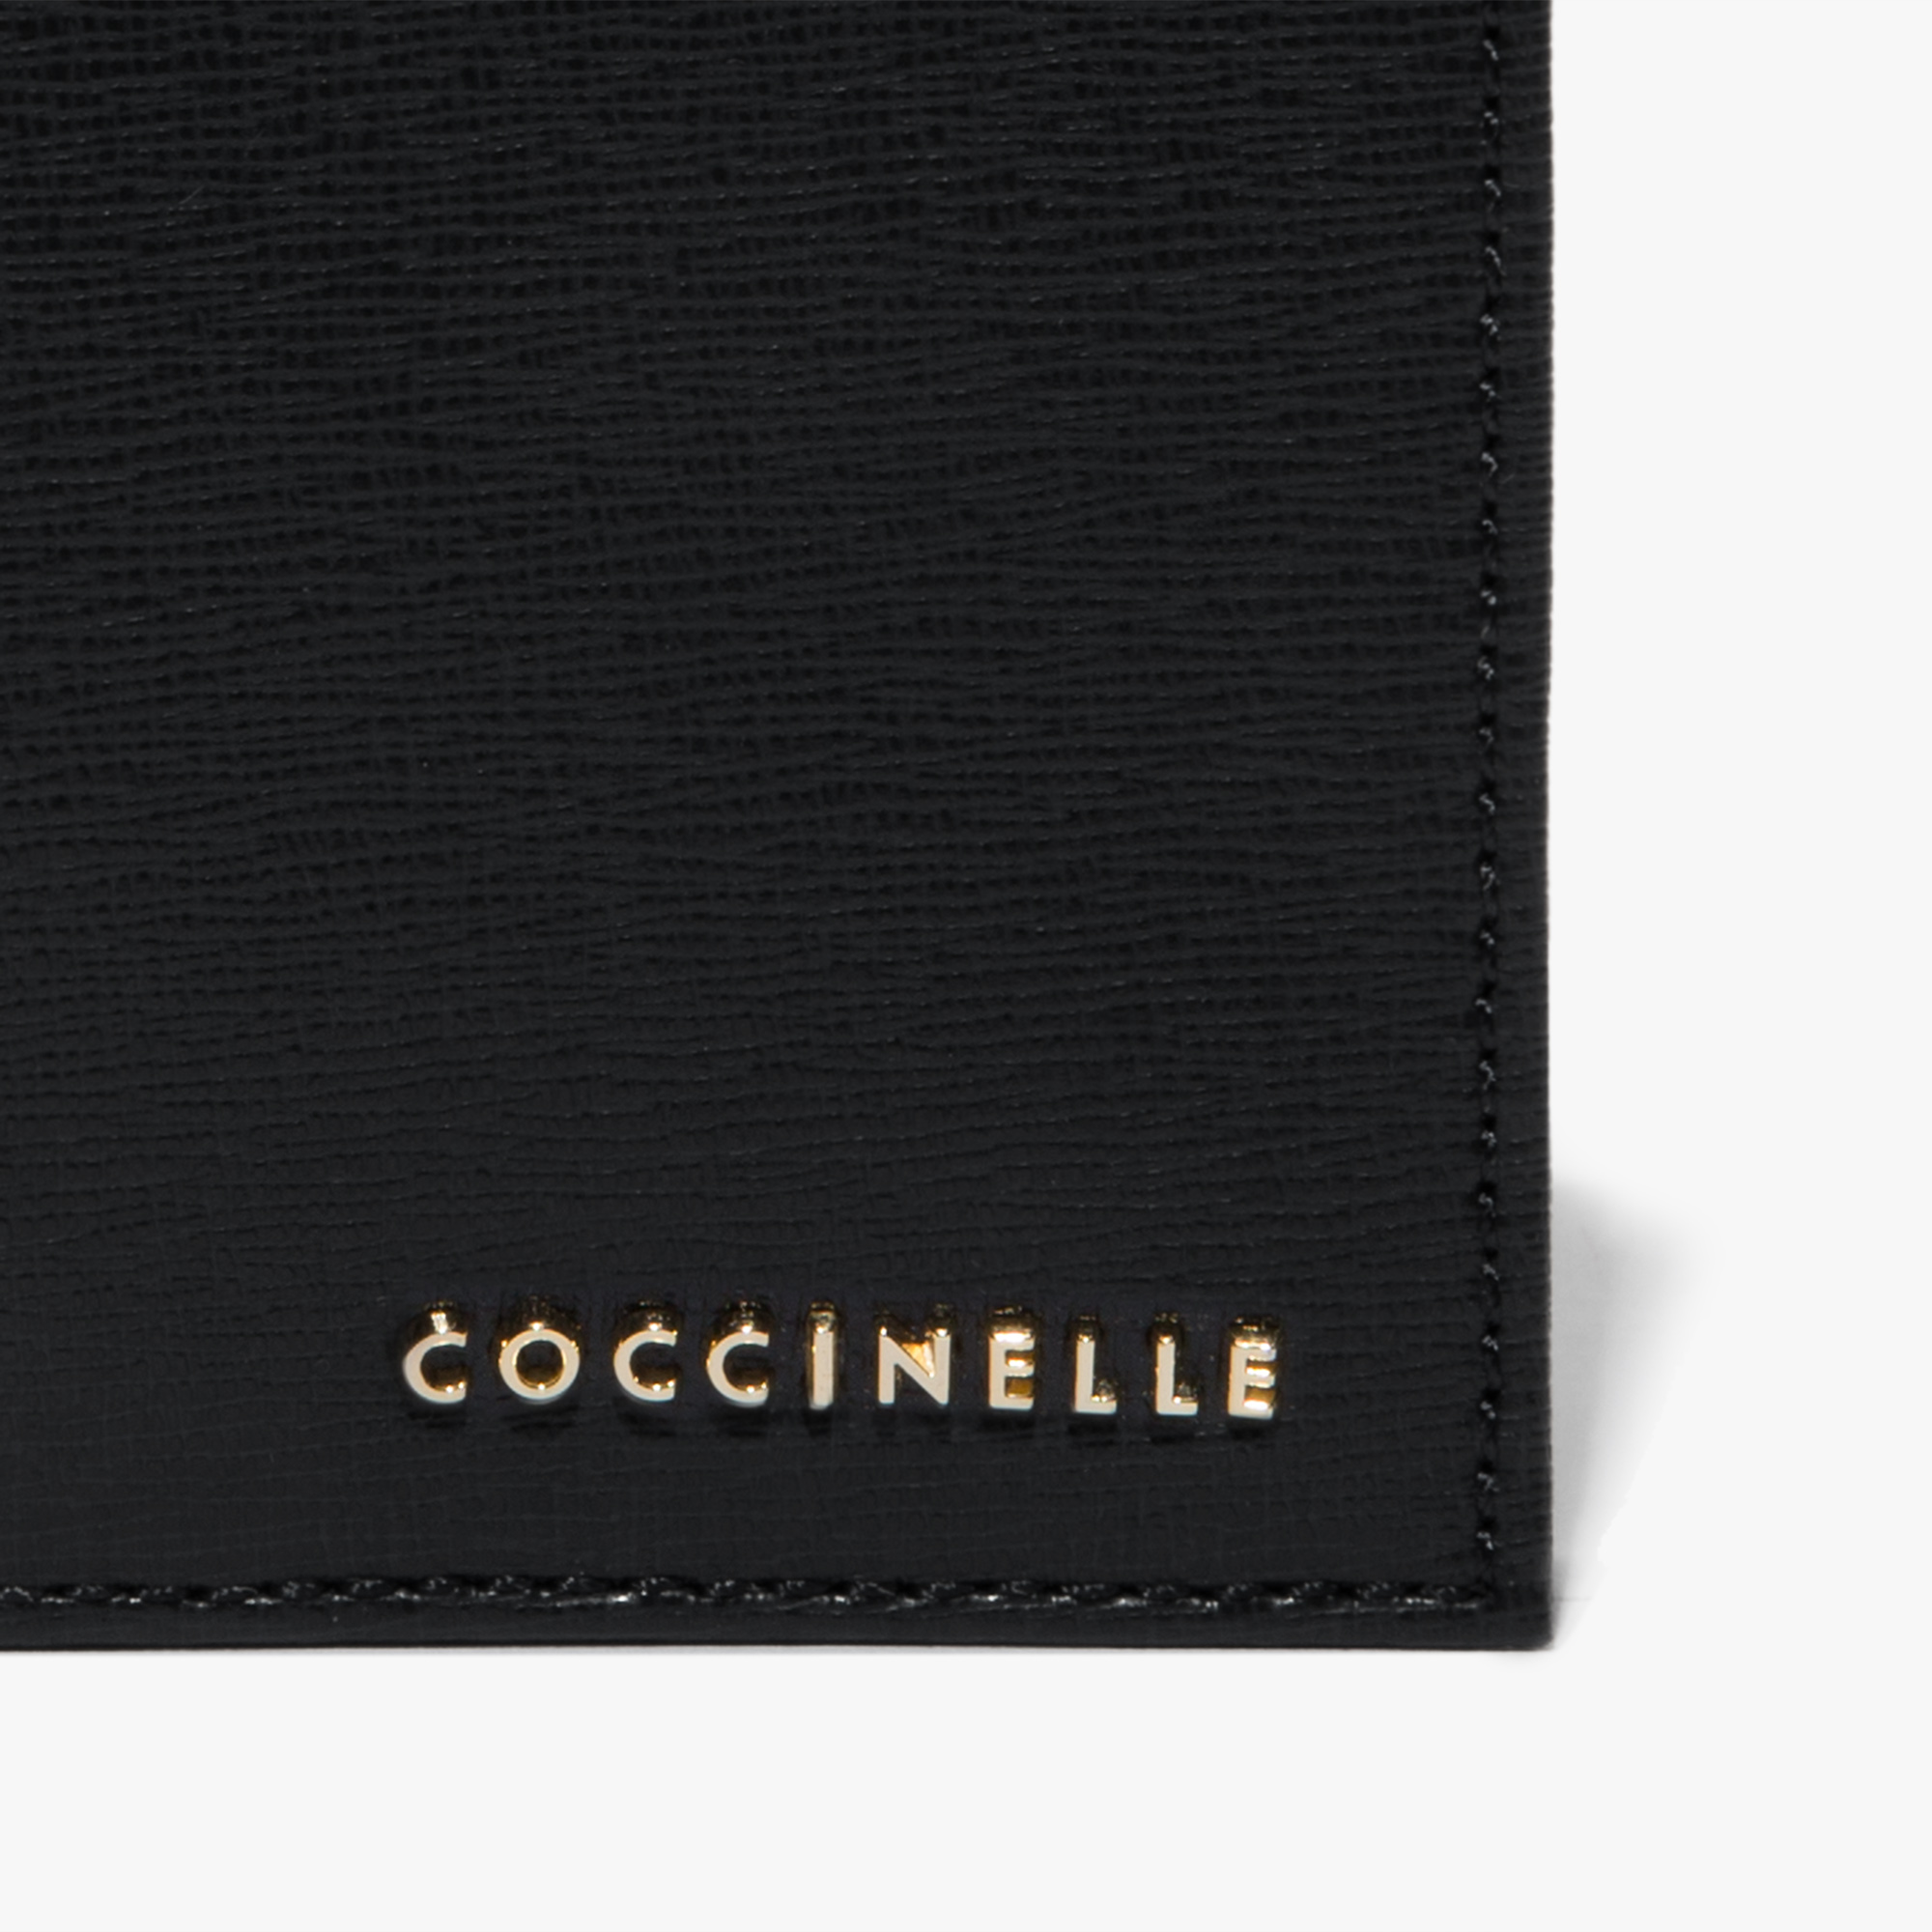 Coccinelle Saffiano document holder